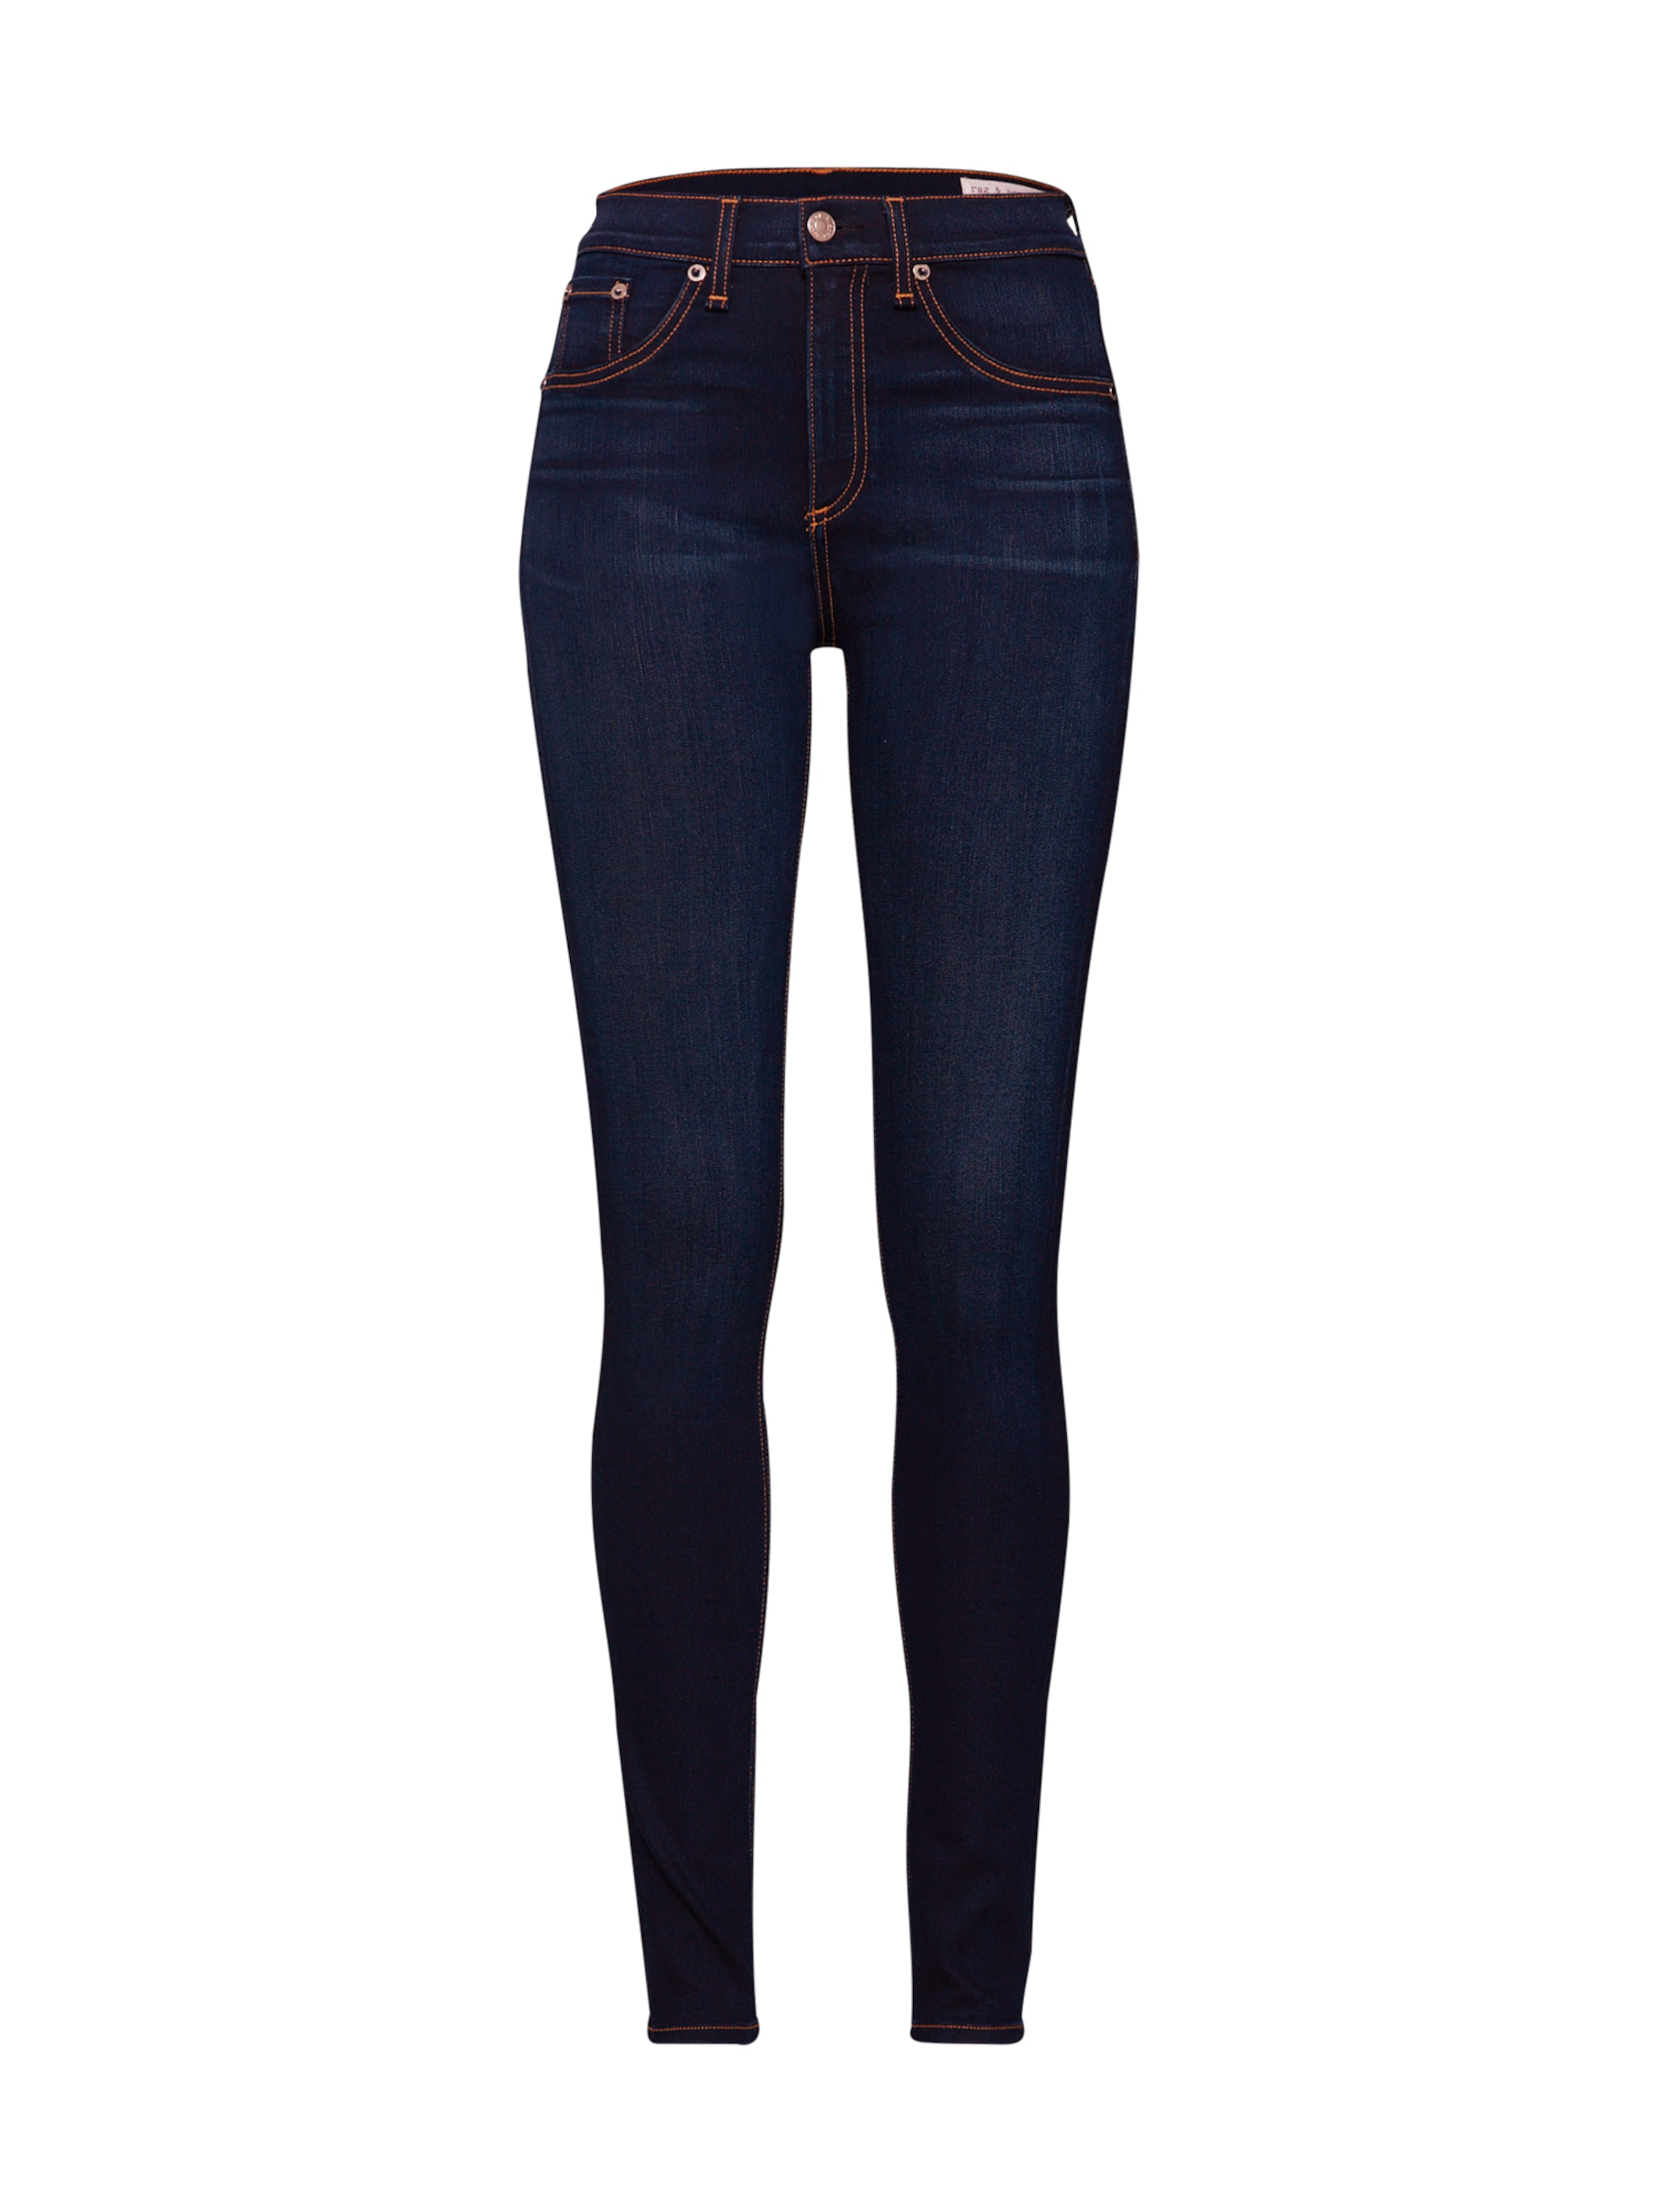 Blue Bone Rise 'high Ragamp; Jeans Skinny' In Denim lF1JKcT3